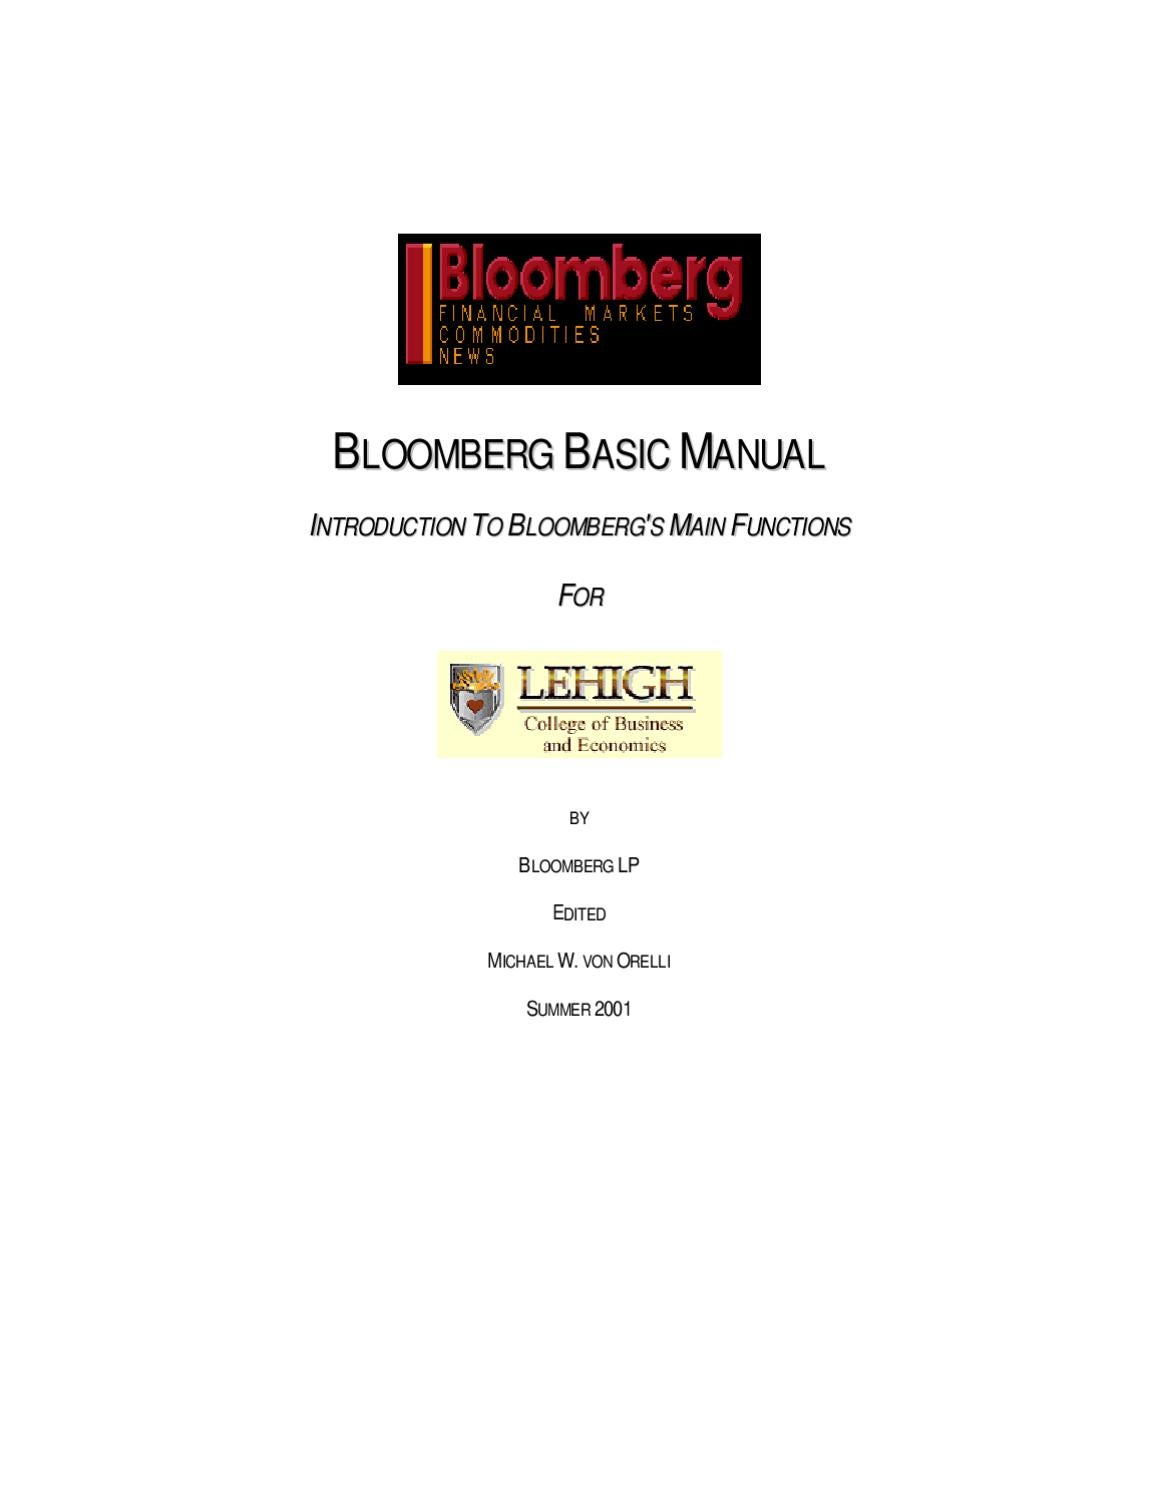 Manual bsico de bloomberg by biblioteca up universidad del pacifico manual bsico de bloomberg by biblioteca up universidad del pacifico issuu buycottarizona Choice Image